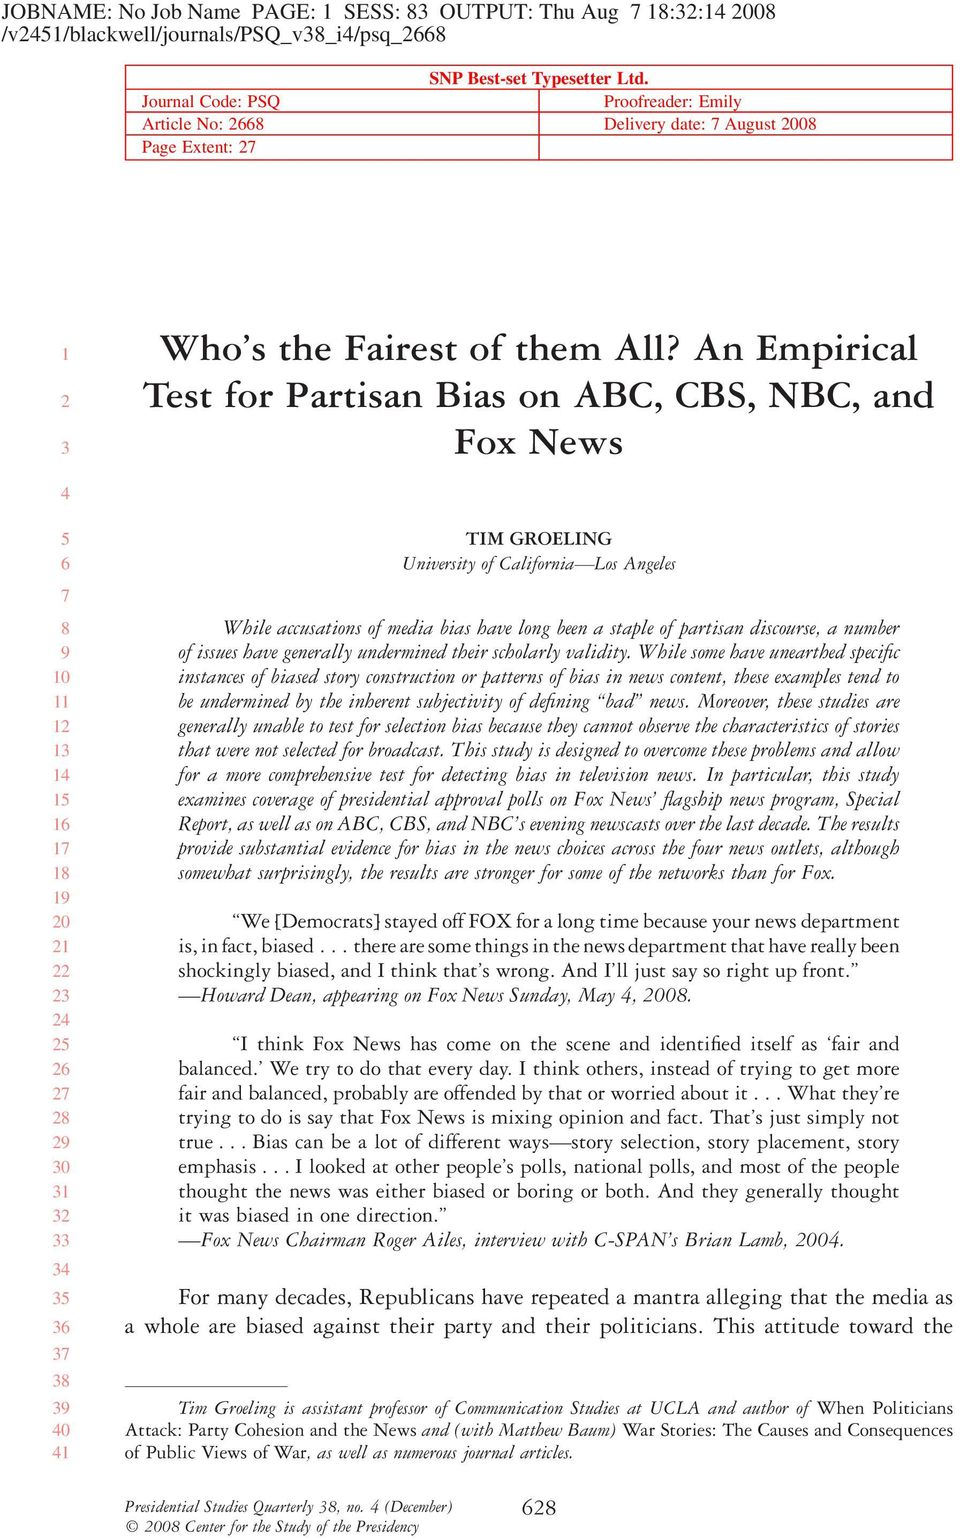 An Empirical Test for Partisan Bias on ABC, CBS, NBC, and Fox News 0 0 0 0 TIM GROELING University of California Los Angeles While accusations of media bias have long been a staple of partisan